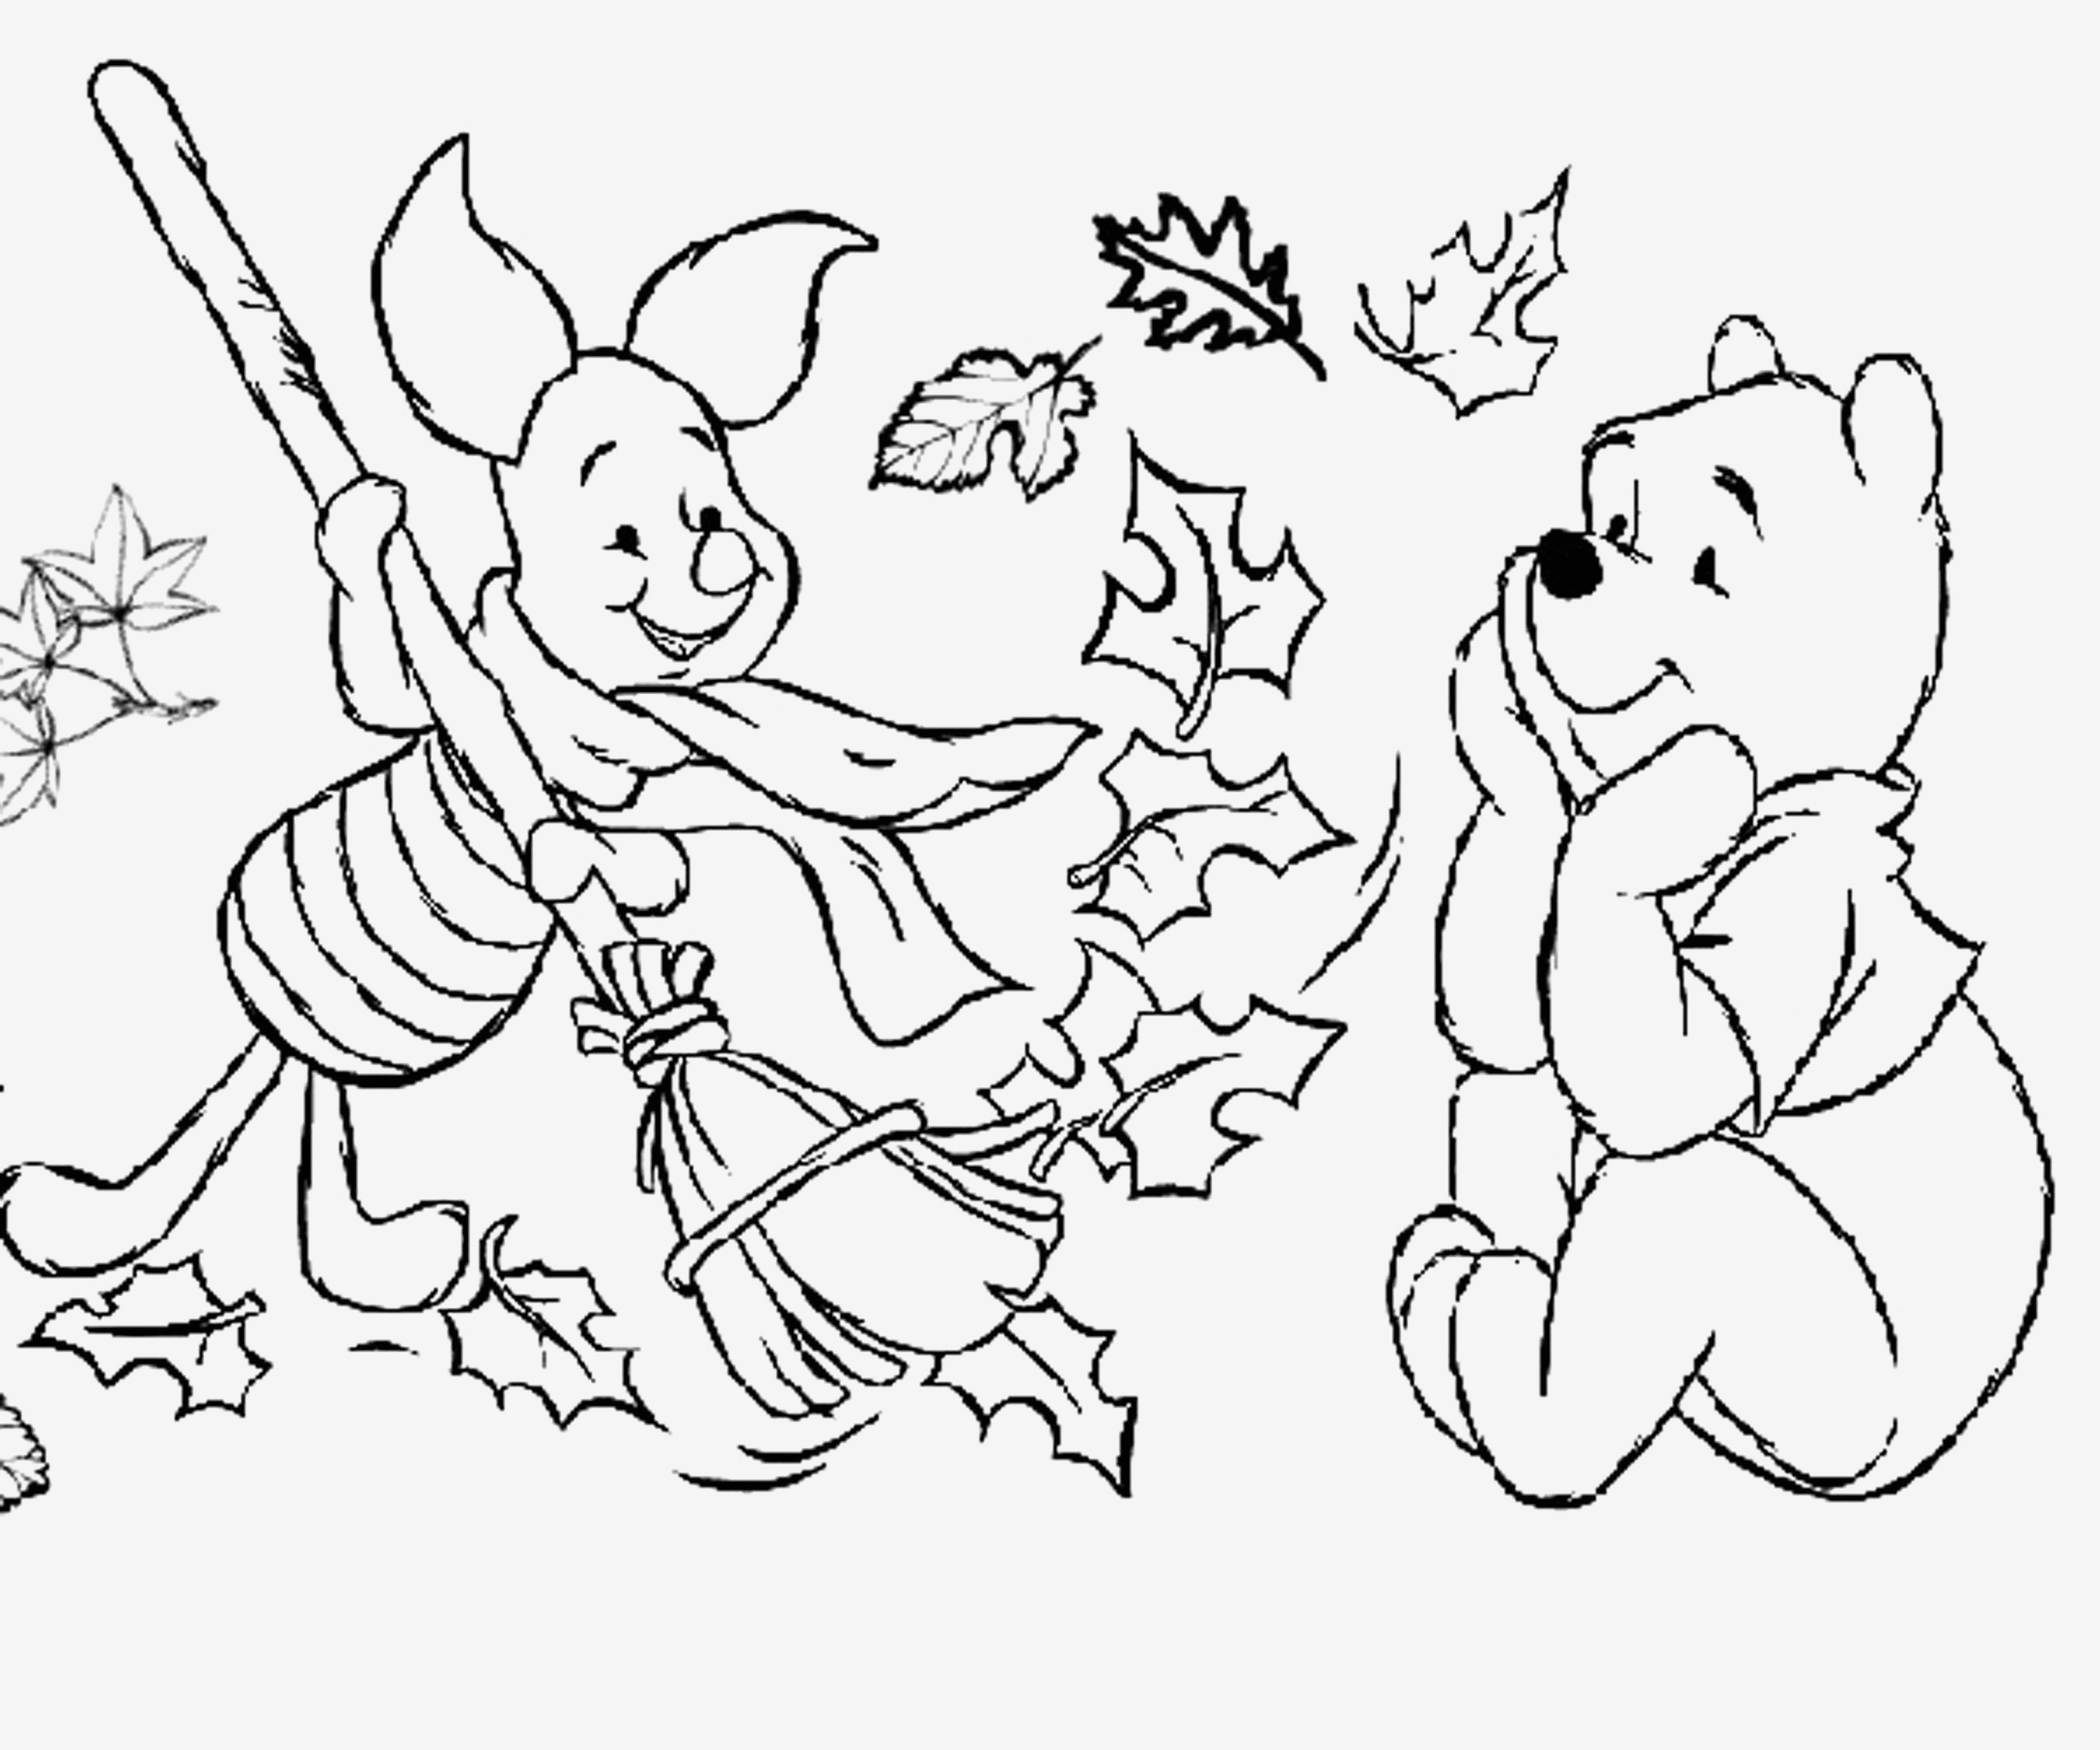 christmas coloring pages for kids Collection-Easy Adult Coloring Pages Free Print Simple Adult Coloring Pages Elegant Best Coloring Page Adult Od 9-p